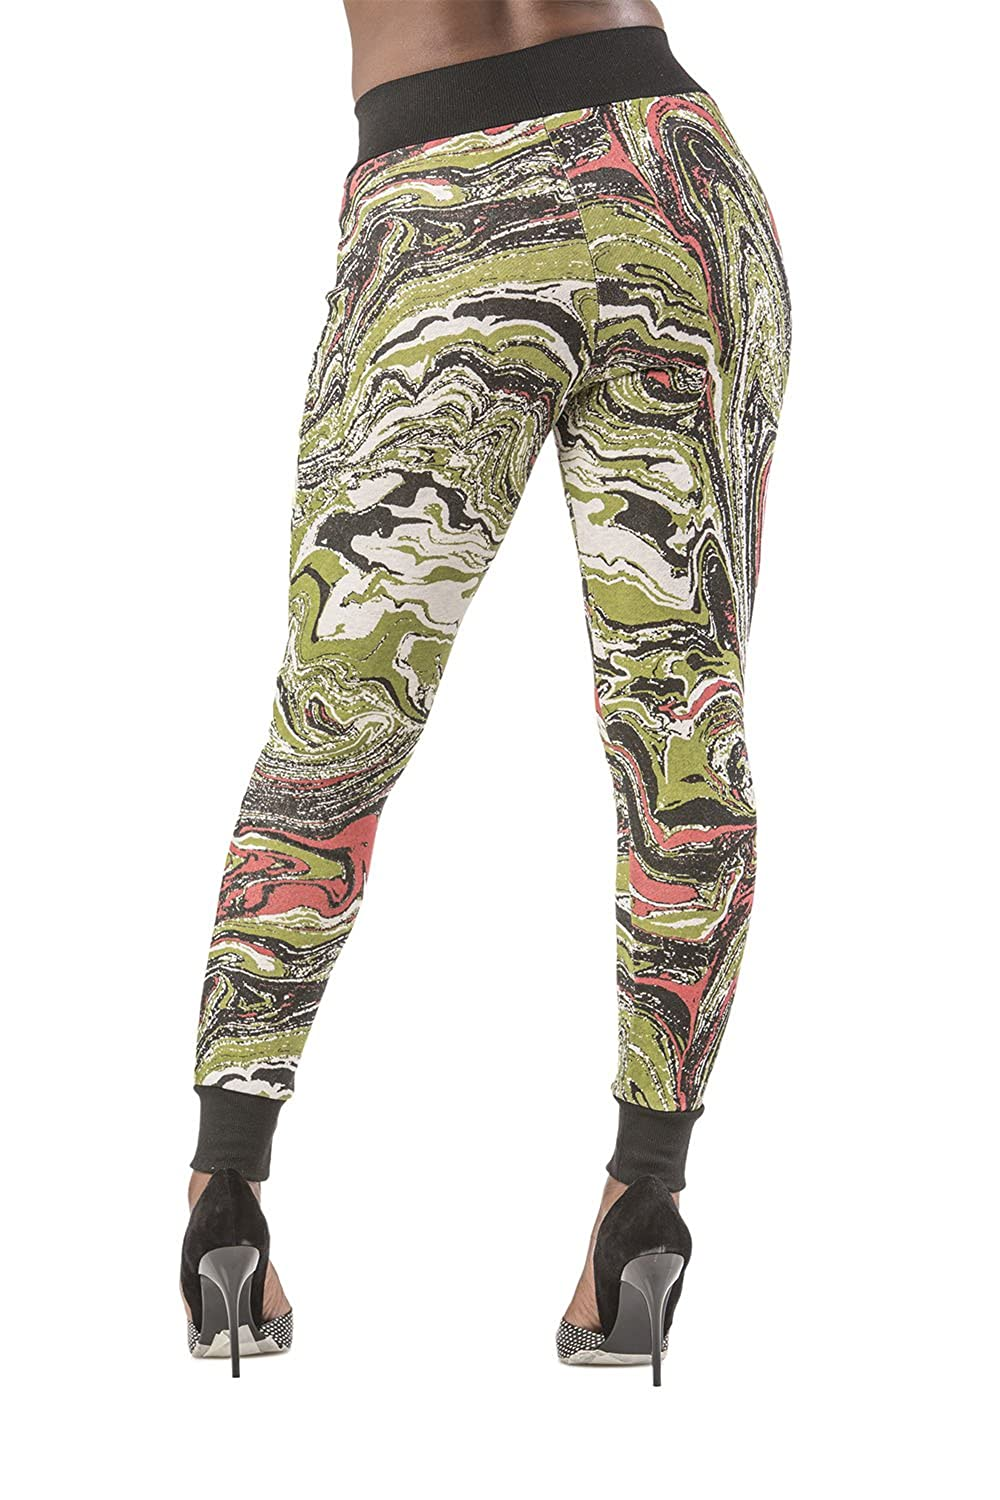 Poetic Justice Curvy Women鈥檚 French Terry Multi Marble Print Pull On Jogger Pant